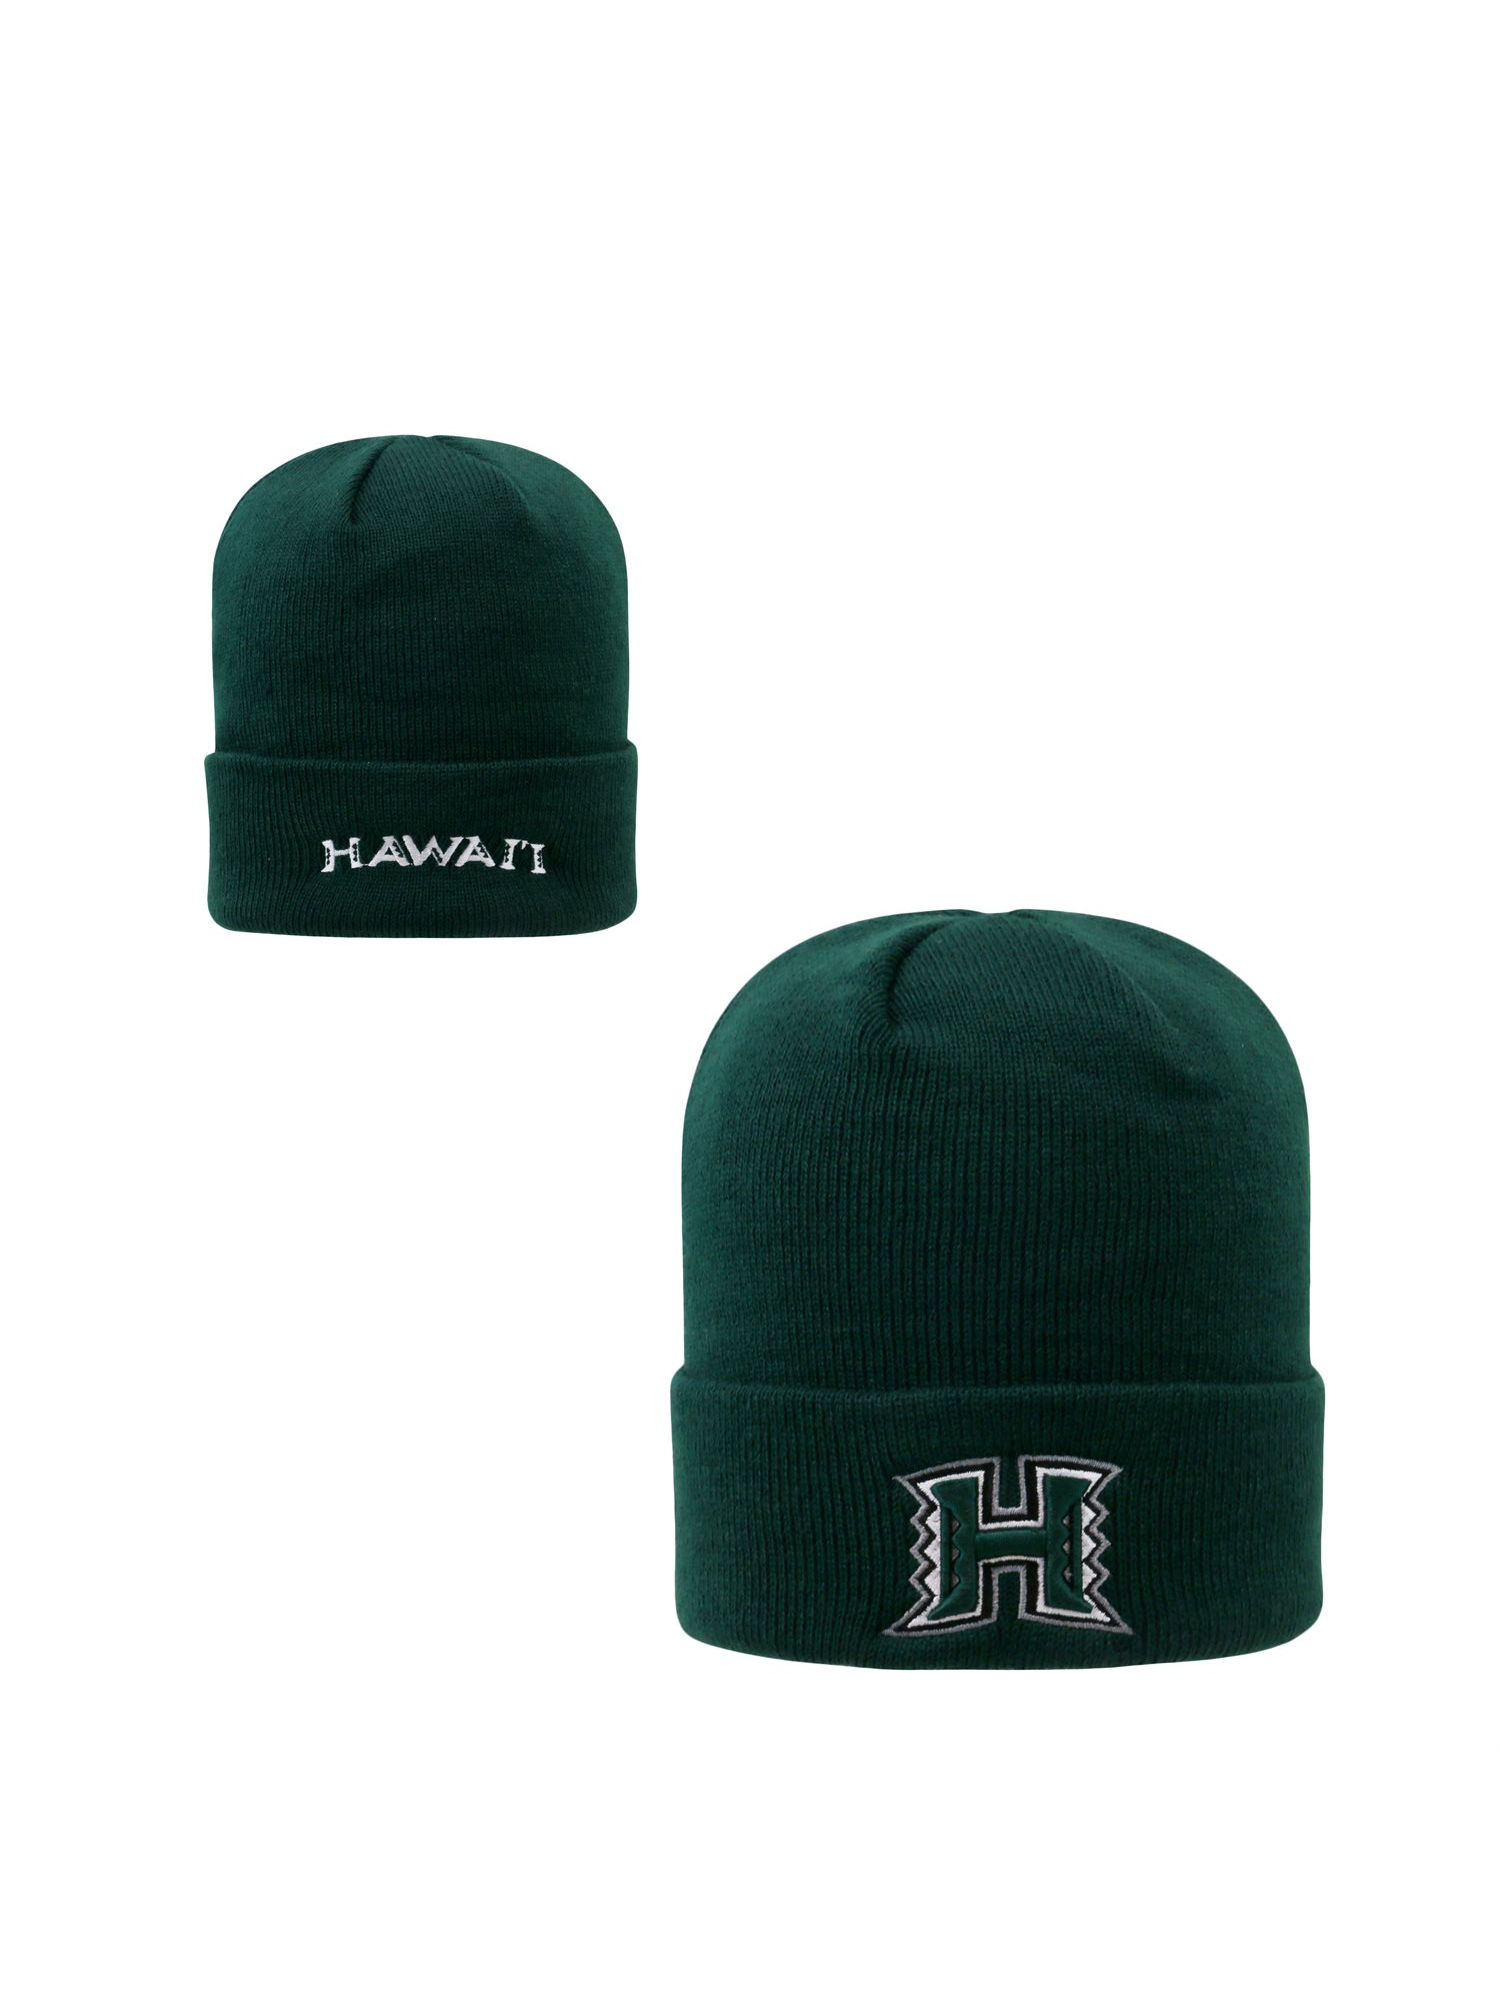 a7af19a732a Hawaii Rainbow Warriors Official NCAA Knit Youth Tow Cuffed Beanie Stocking  Stretch Sock Hat Cap by Top of the World 096742 - Walmart.com